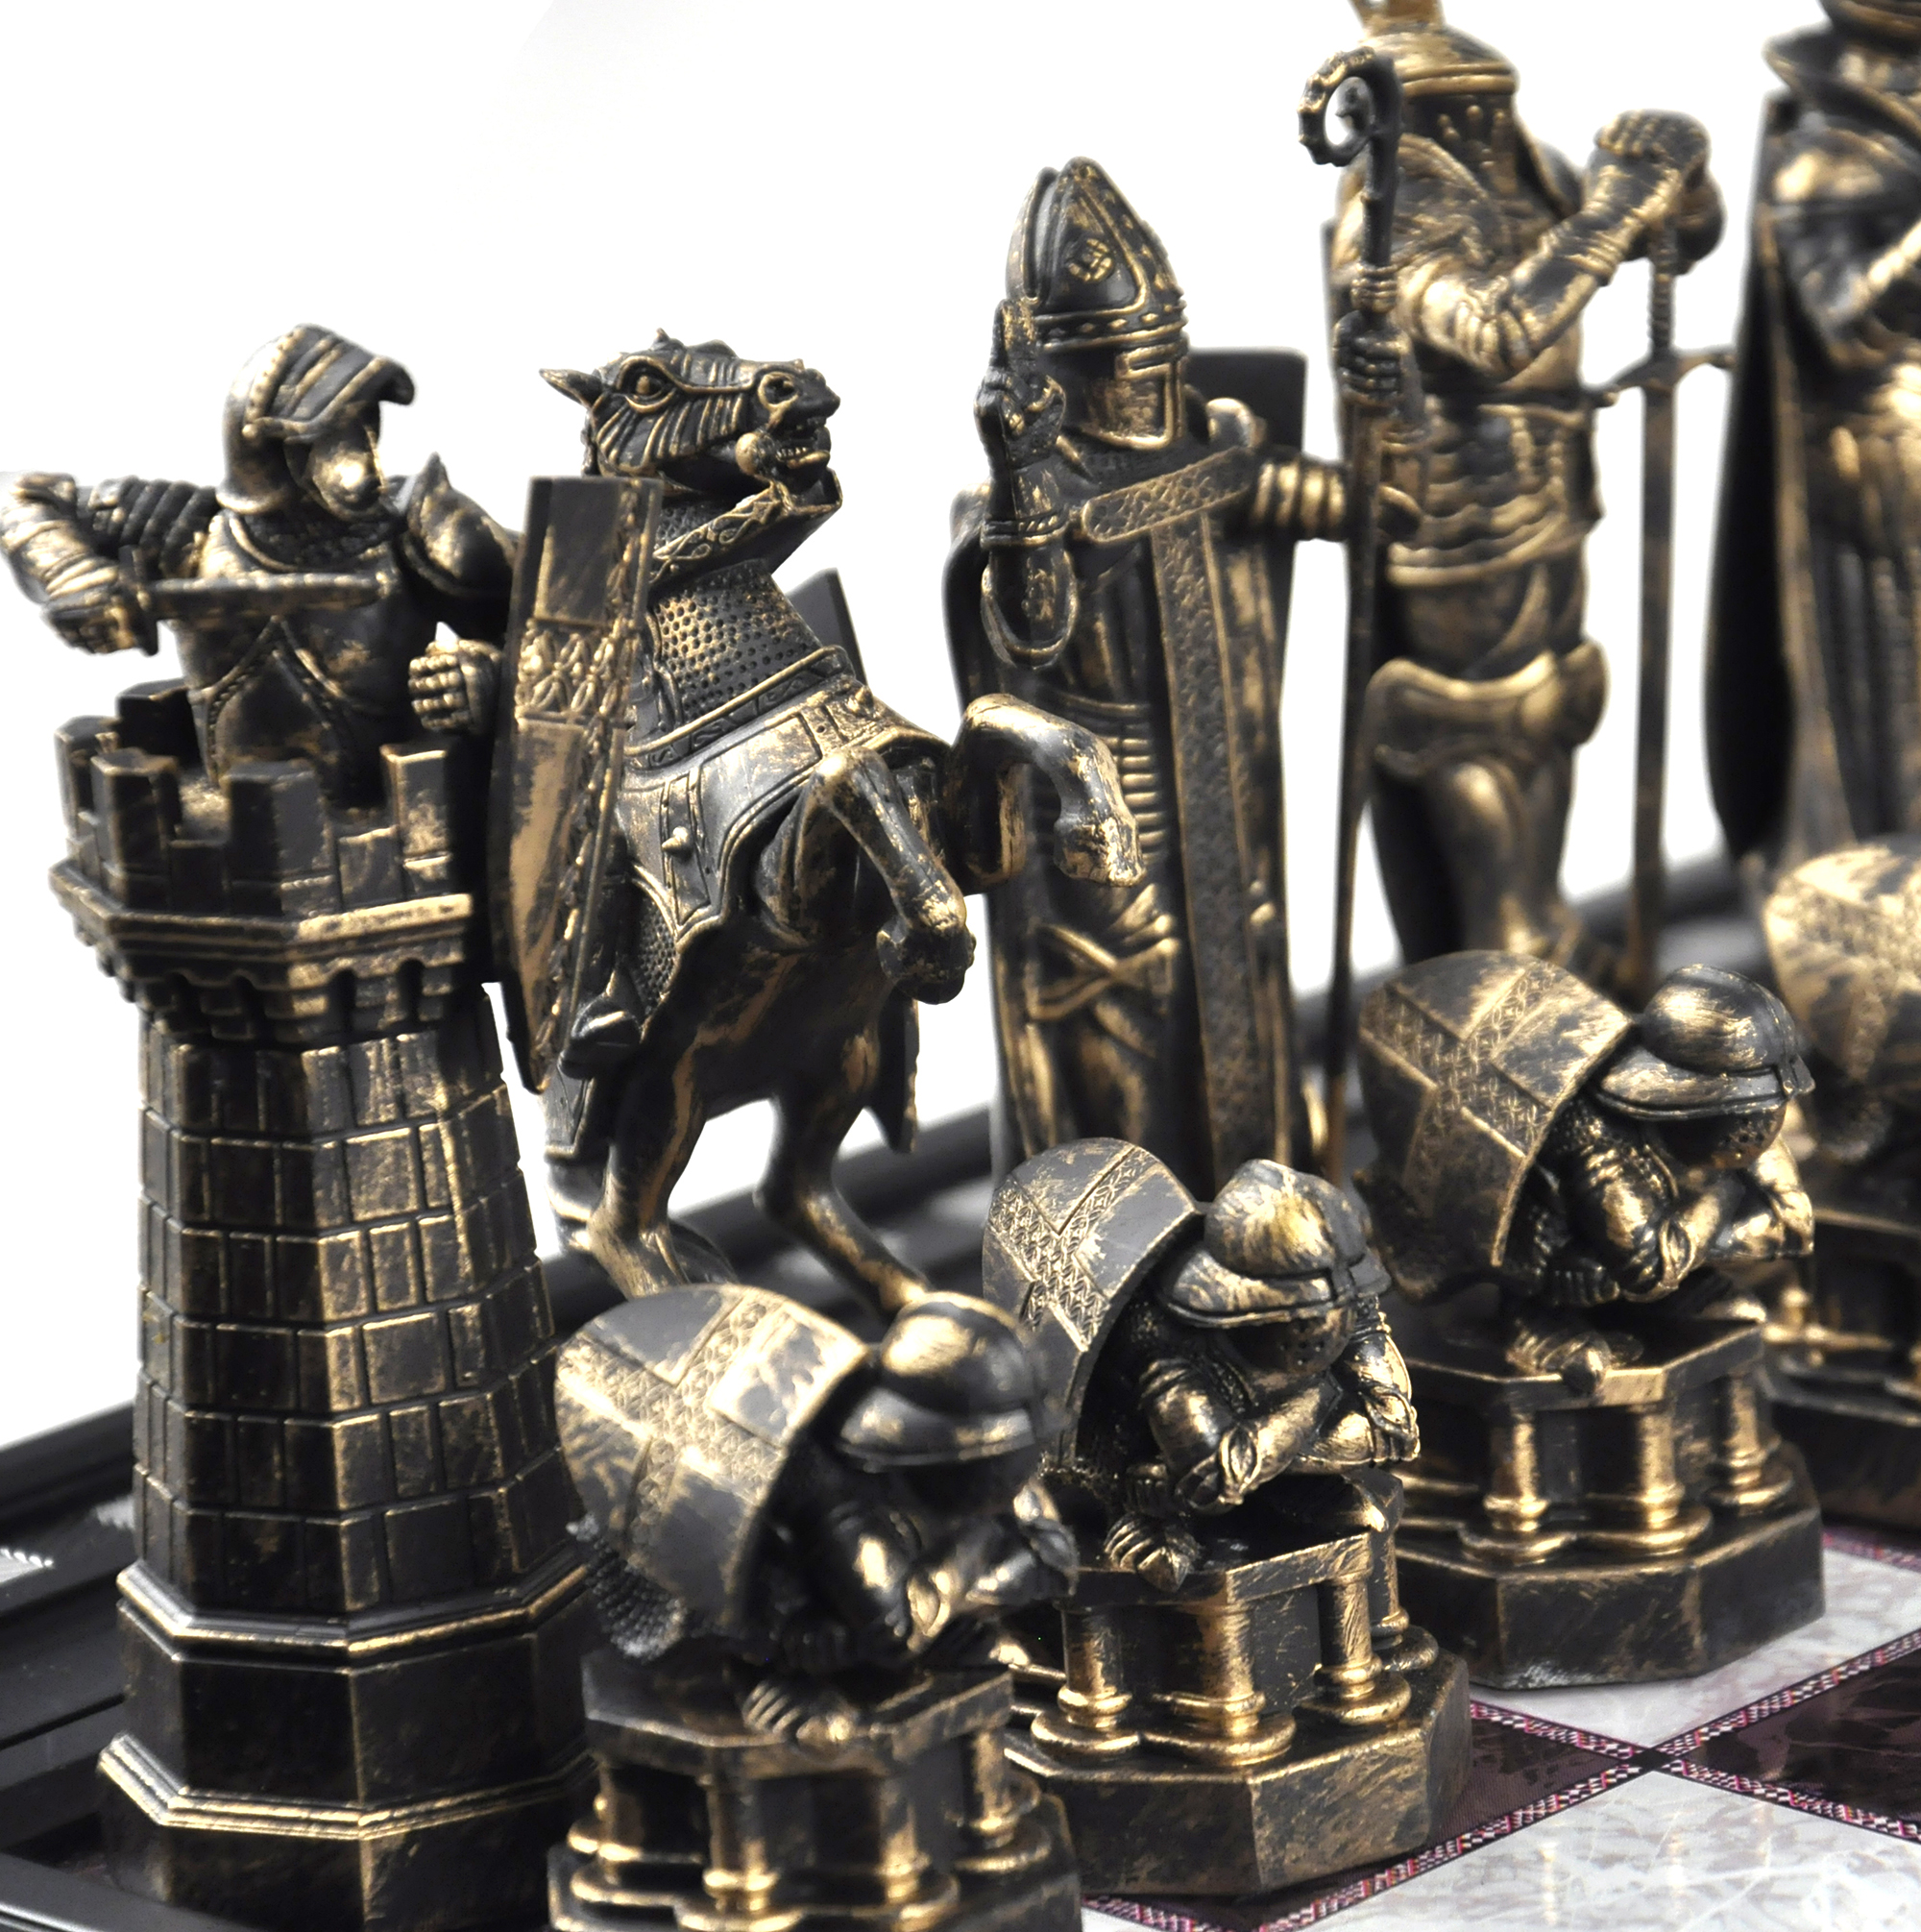 The Wizards Chess Set From Harry Potter And The